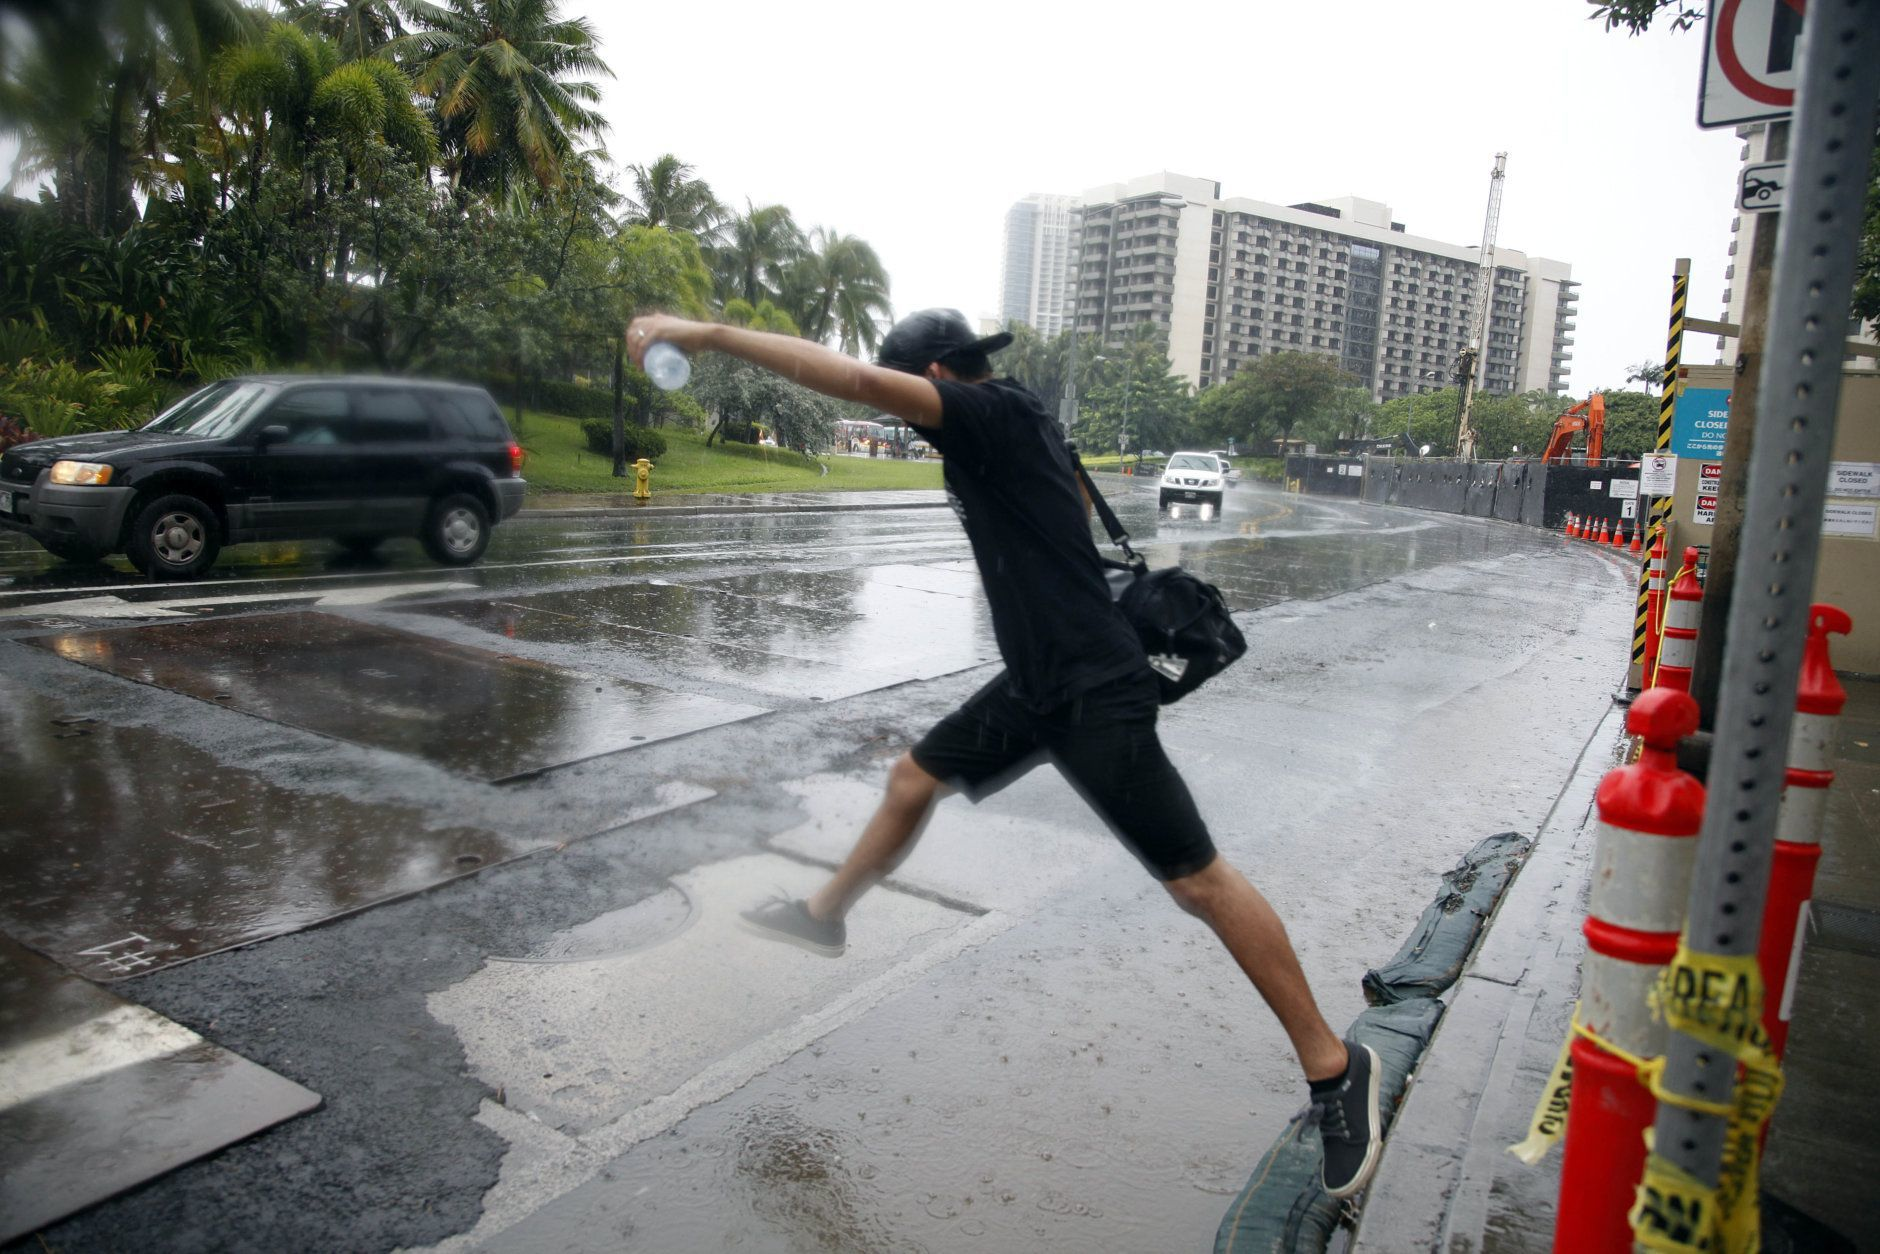 Ward Kea, of Honolulu, jumps over a puddle as he prepares to board a bus in Honolulu Sunday, Oct. 19, 2014. Hurricane Ana brought a steady rain to the Hawaiian Island of Oahu as it passed about 180 miles west. (AP Photo/P. Solomon Banda)